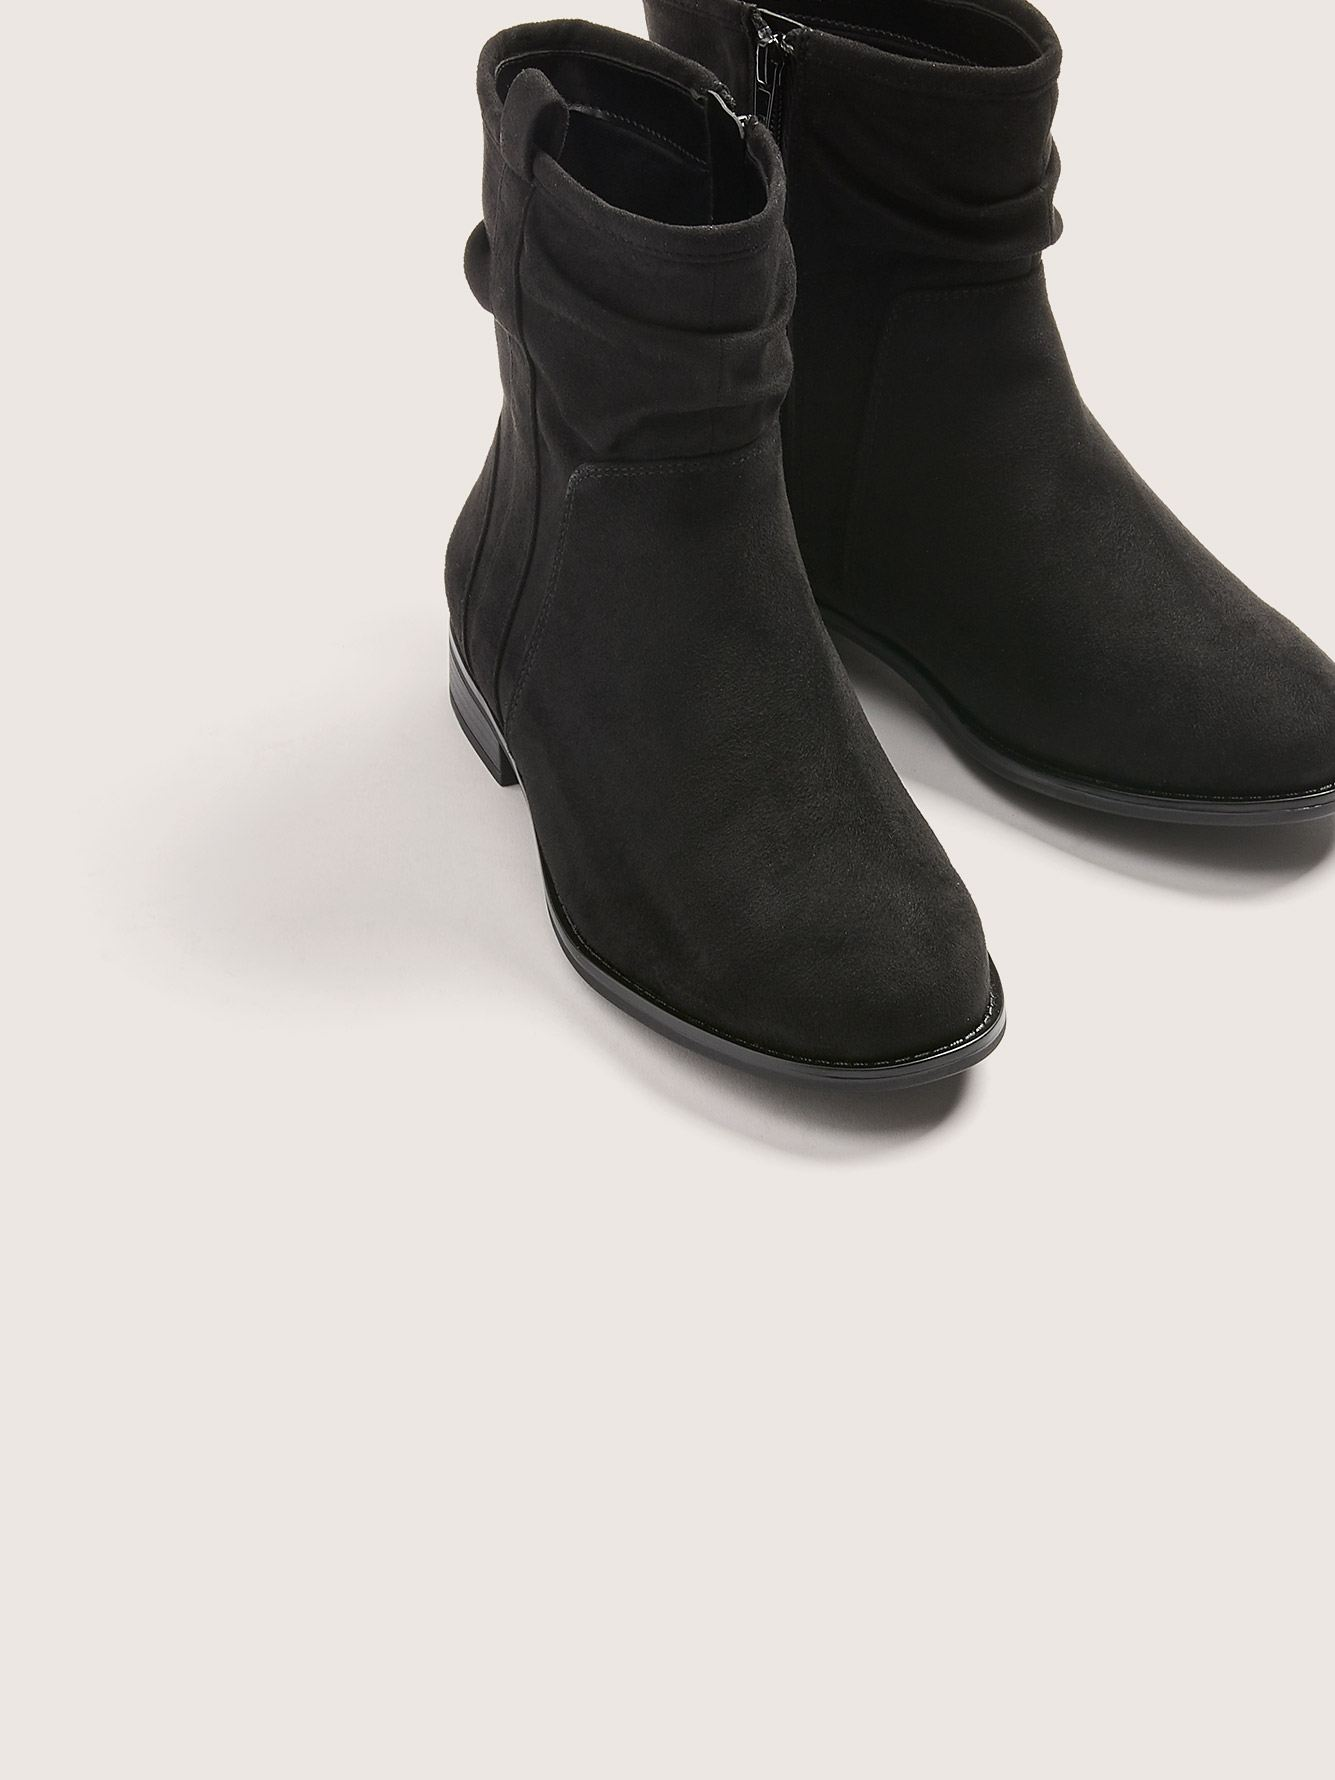 Microsuede Extra Wide Bootie - In Every Story